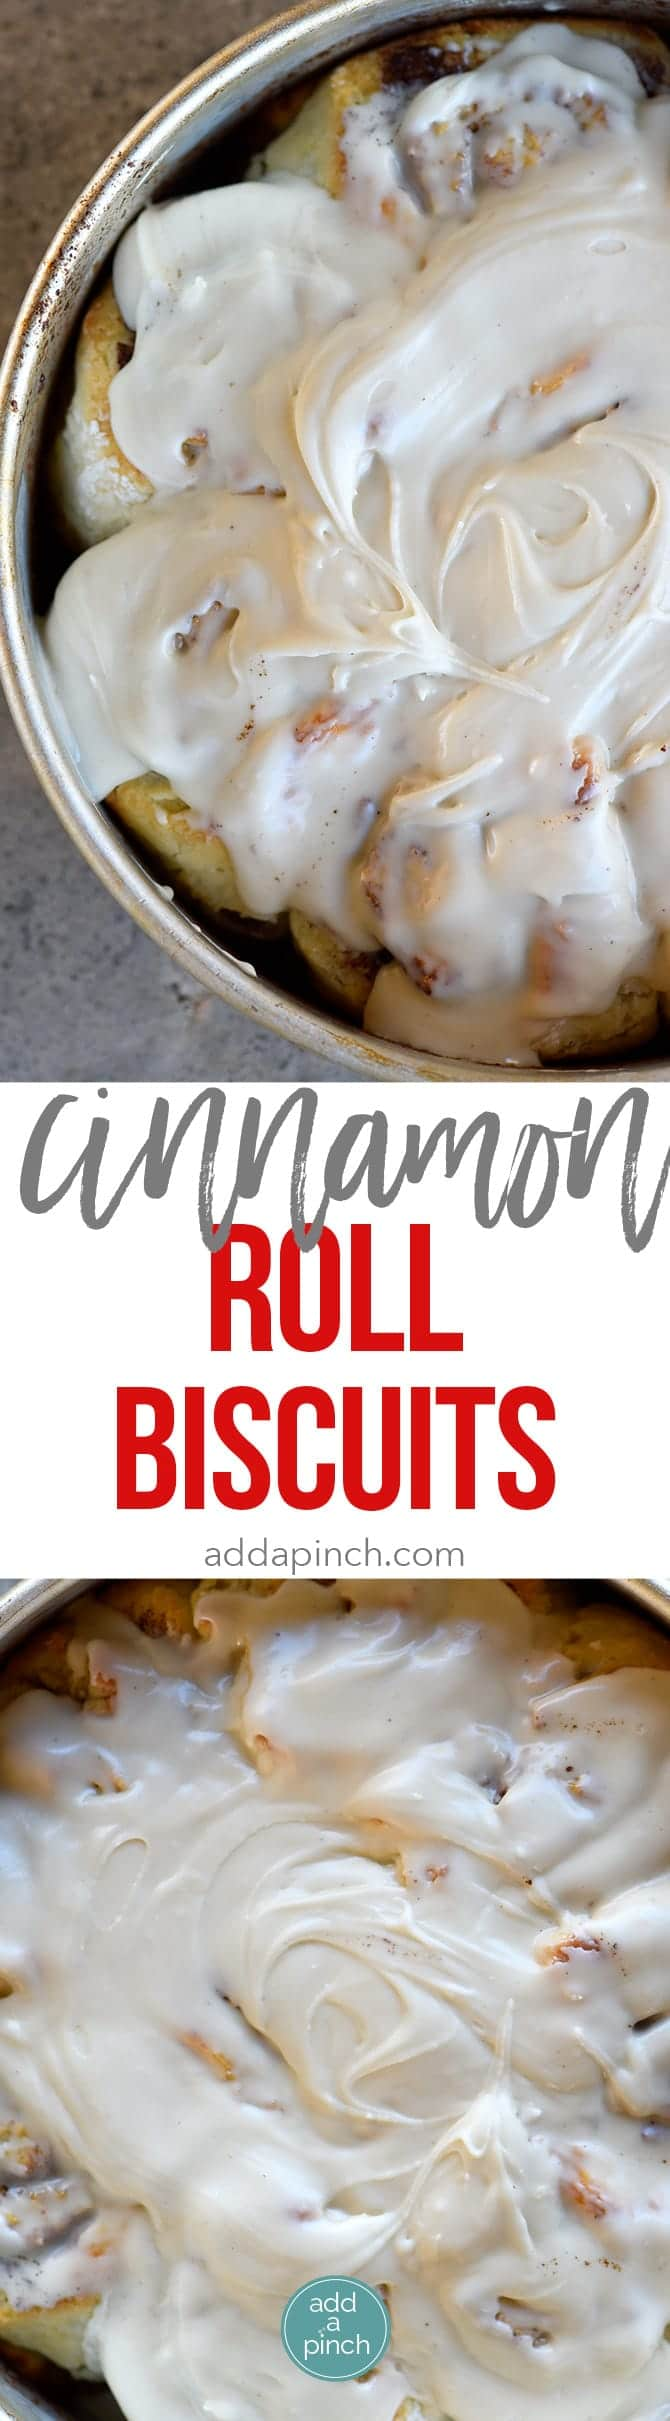 Cinnamon Roll Biscuits Recipe - Cinnamon Roll Biscuits have all the deliciousness of a cinnamon roll with the ease of a biscuit! // addapinch.com